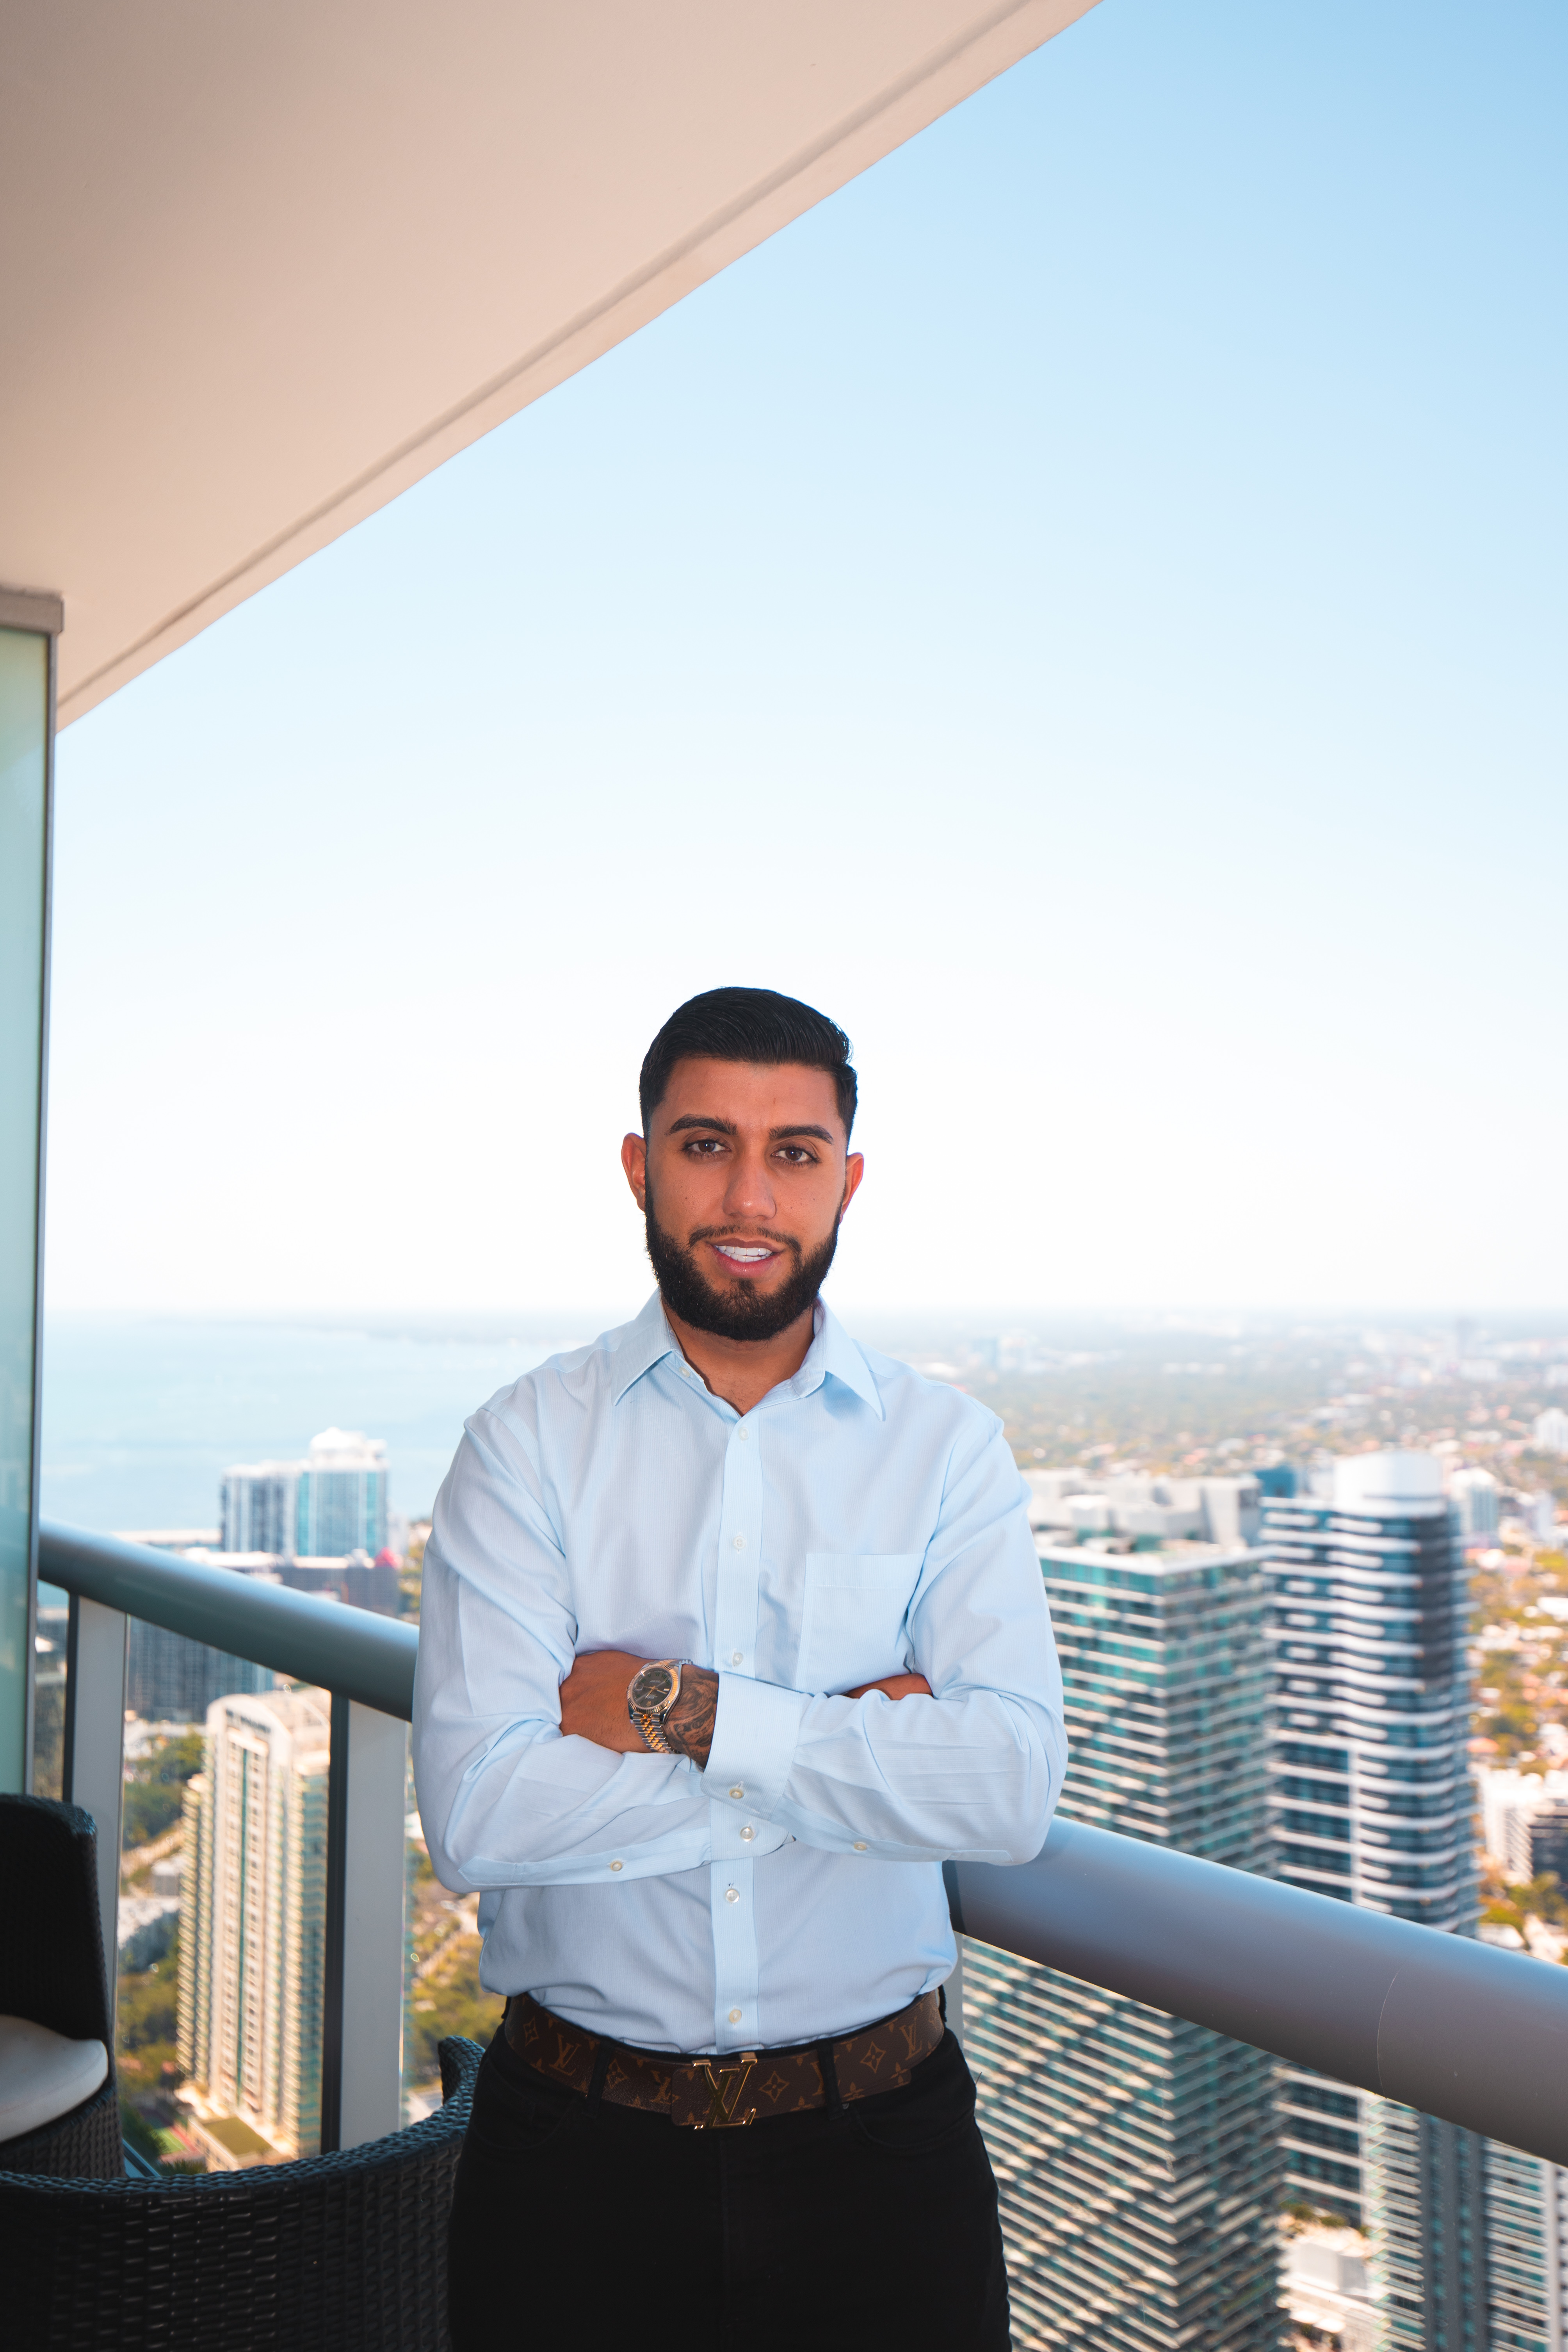 Cuban Origin Entrepreneur Brandon Rangel Shares the Broke-to-Riches Story Behind His Two Self-Owned Businesses